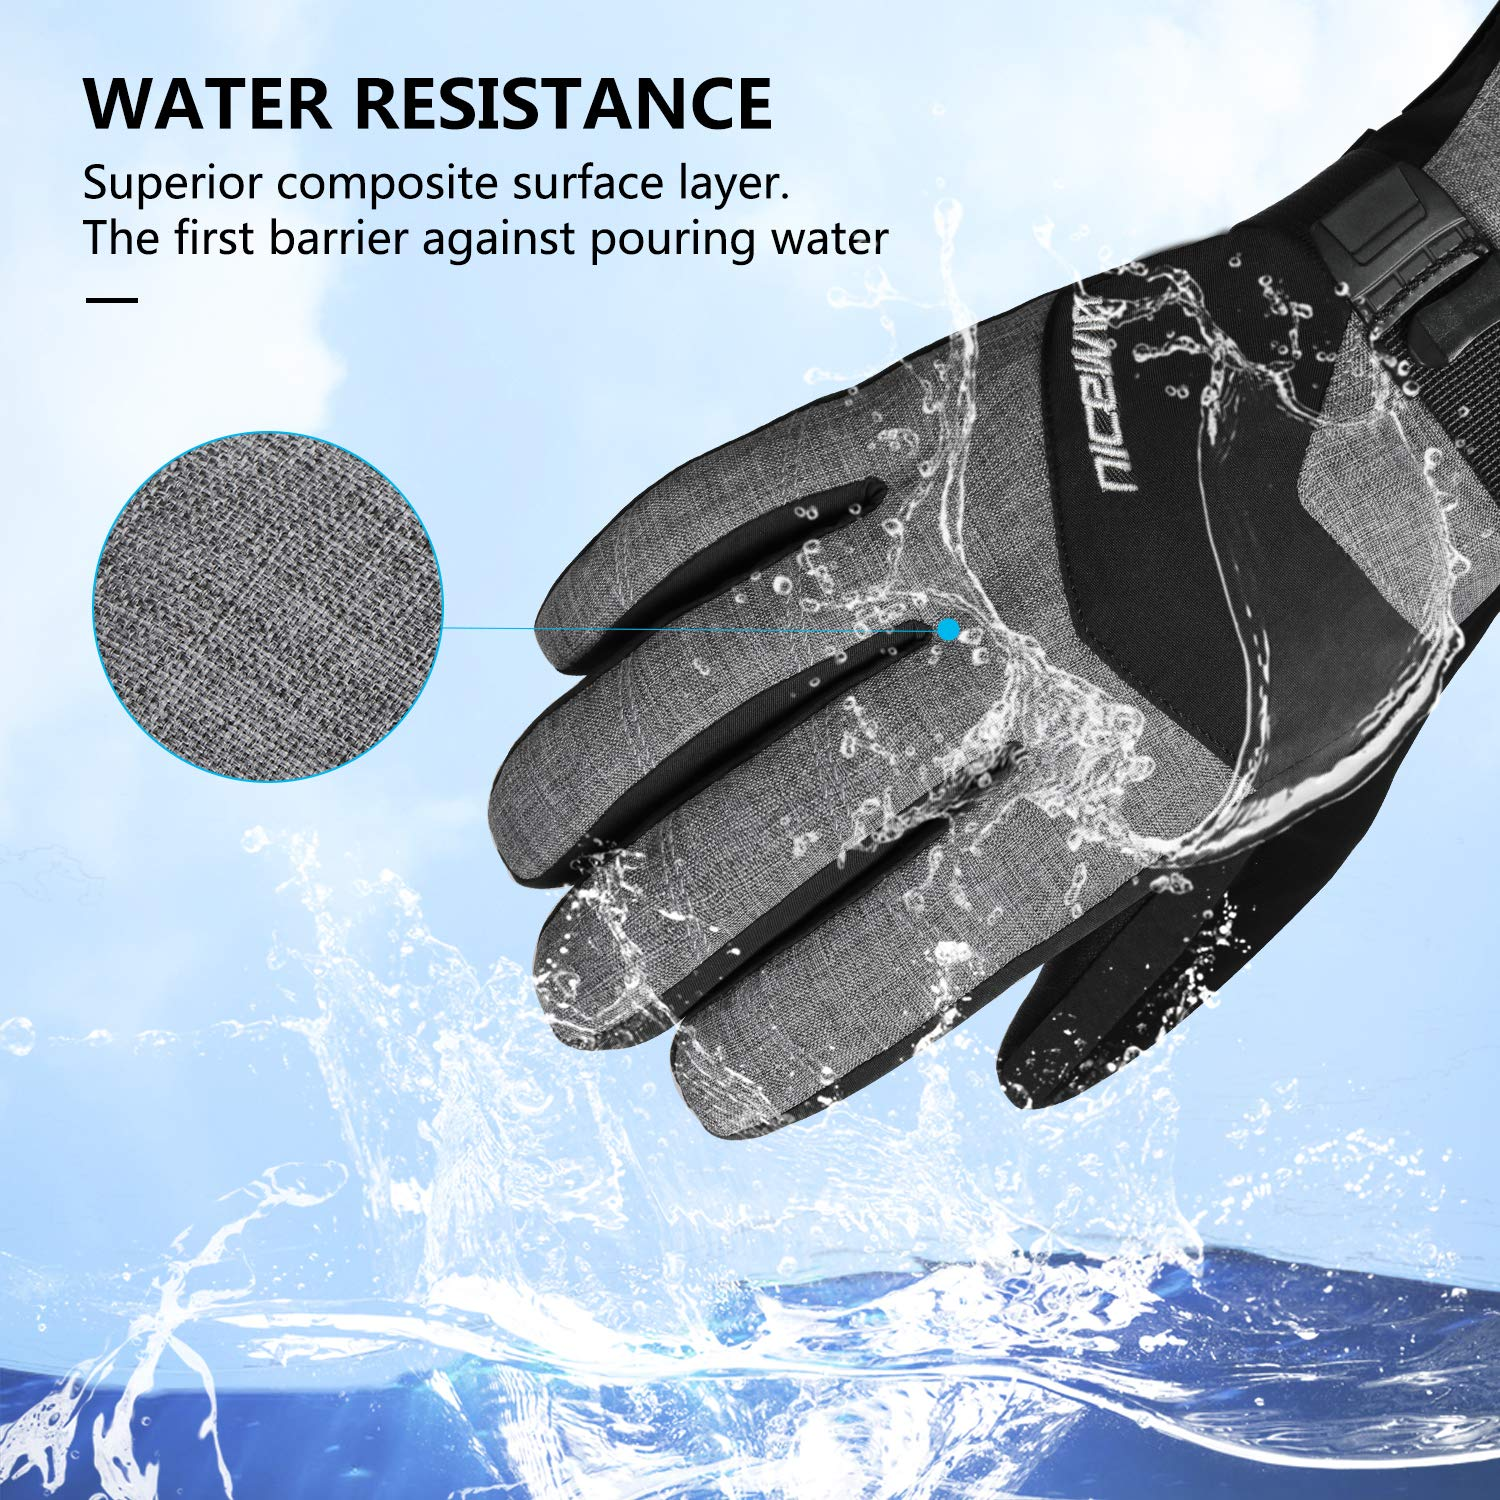 NICEWIN 2019 New Winter Ski Gloves Men Women Windproof Warm Winter Cold Weather Gloves for Outdoor Sports Skiing Snowboarding Shoveling Snow